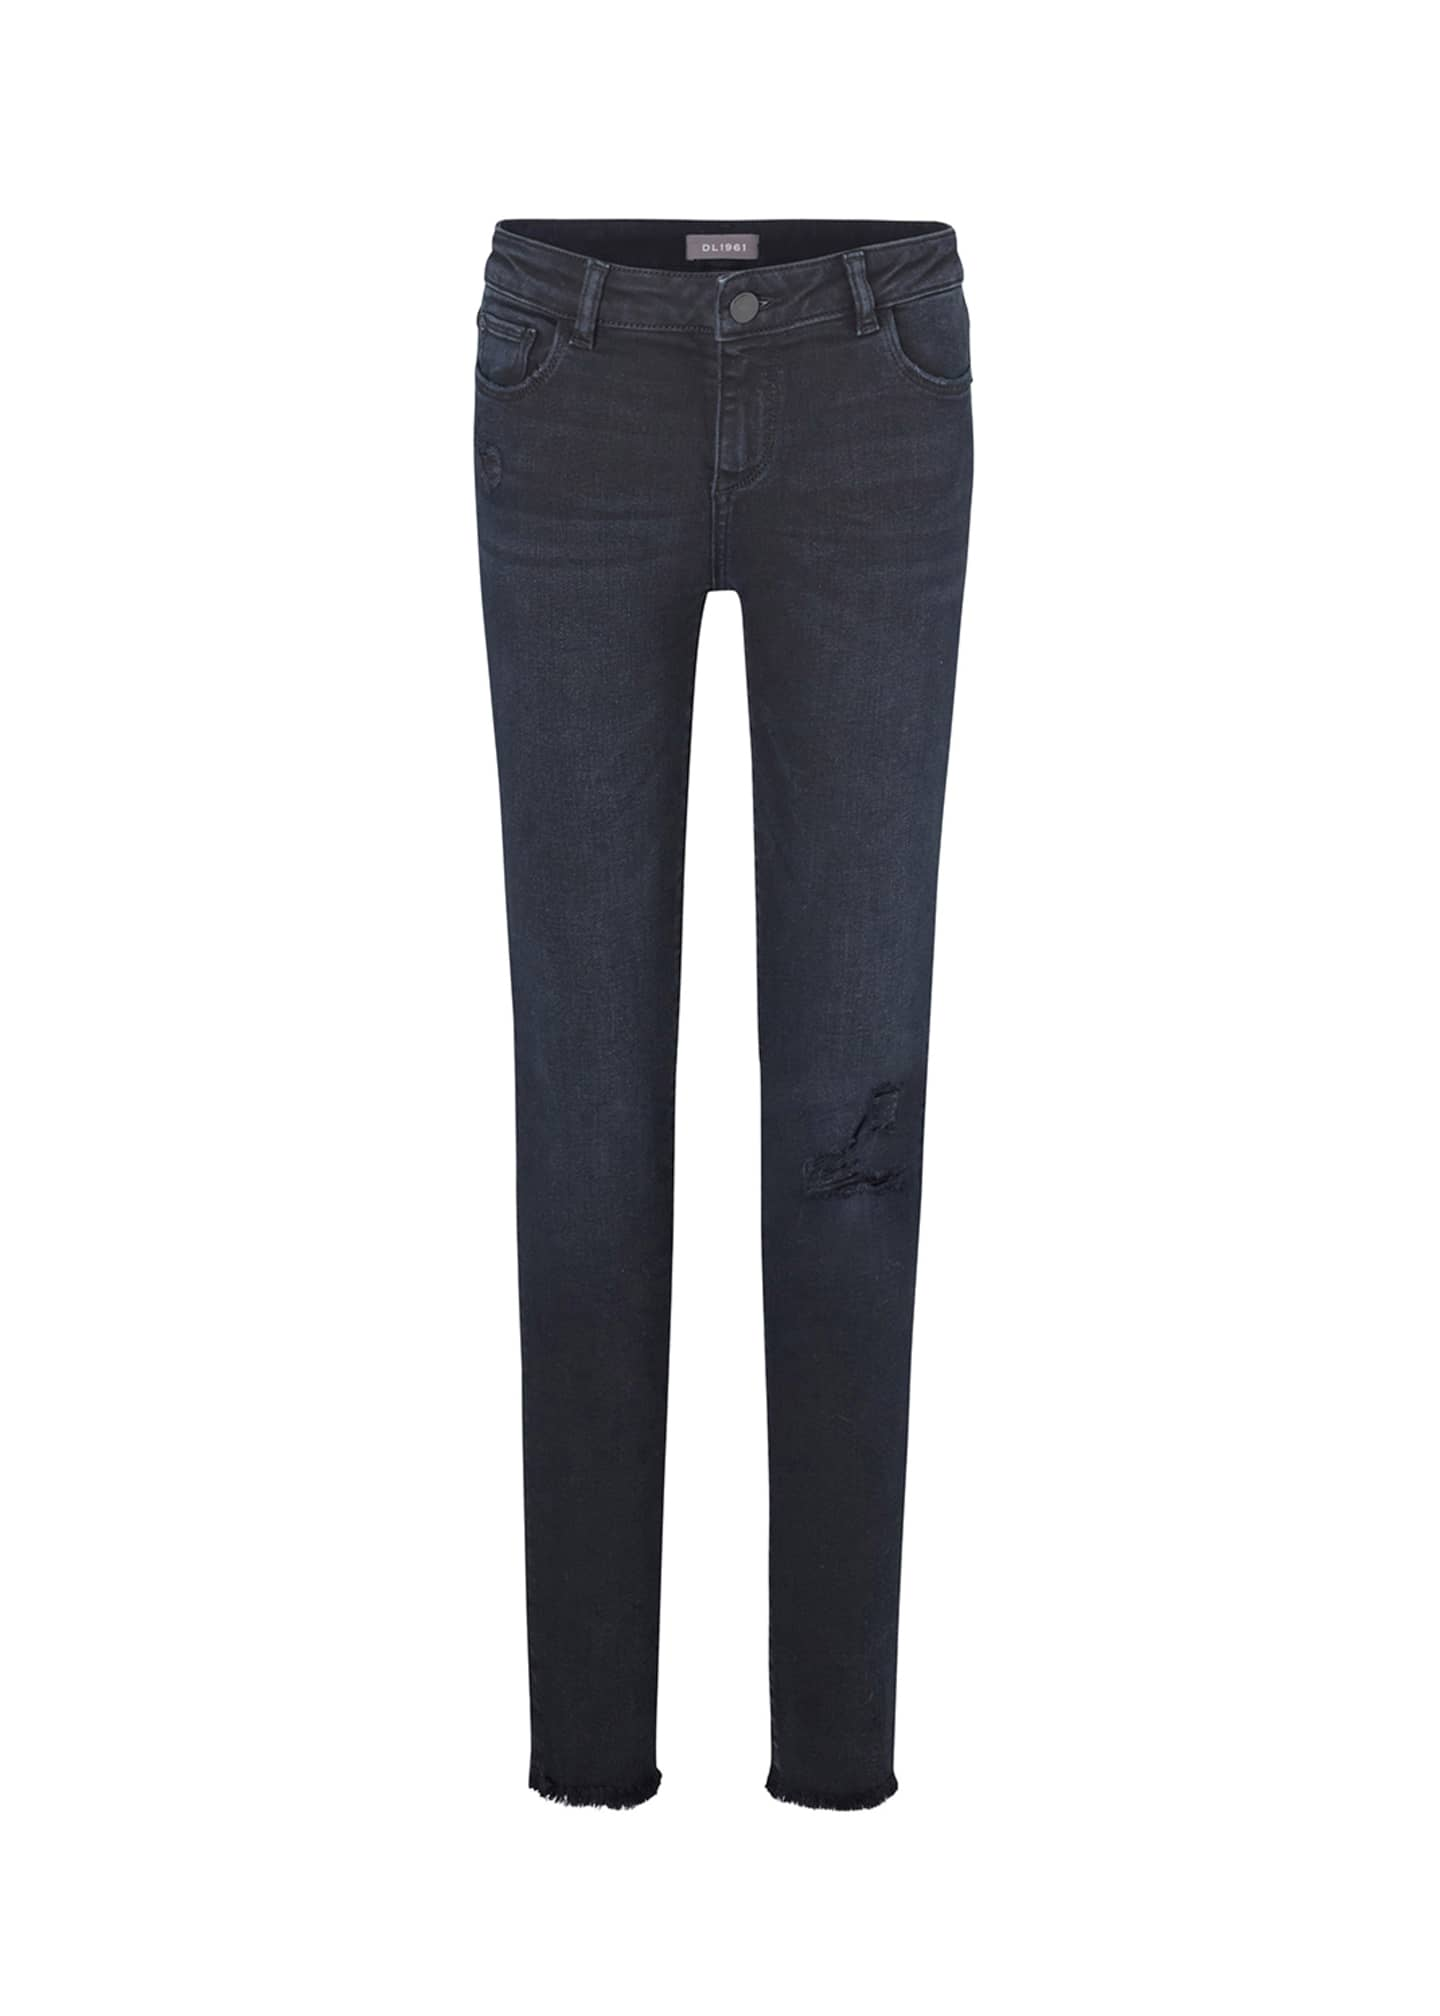 DL1961 Premium Denim Girl's Chloe Skinny Distressed Denim